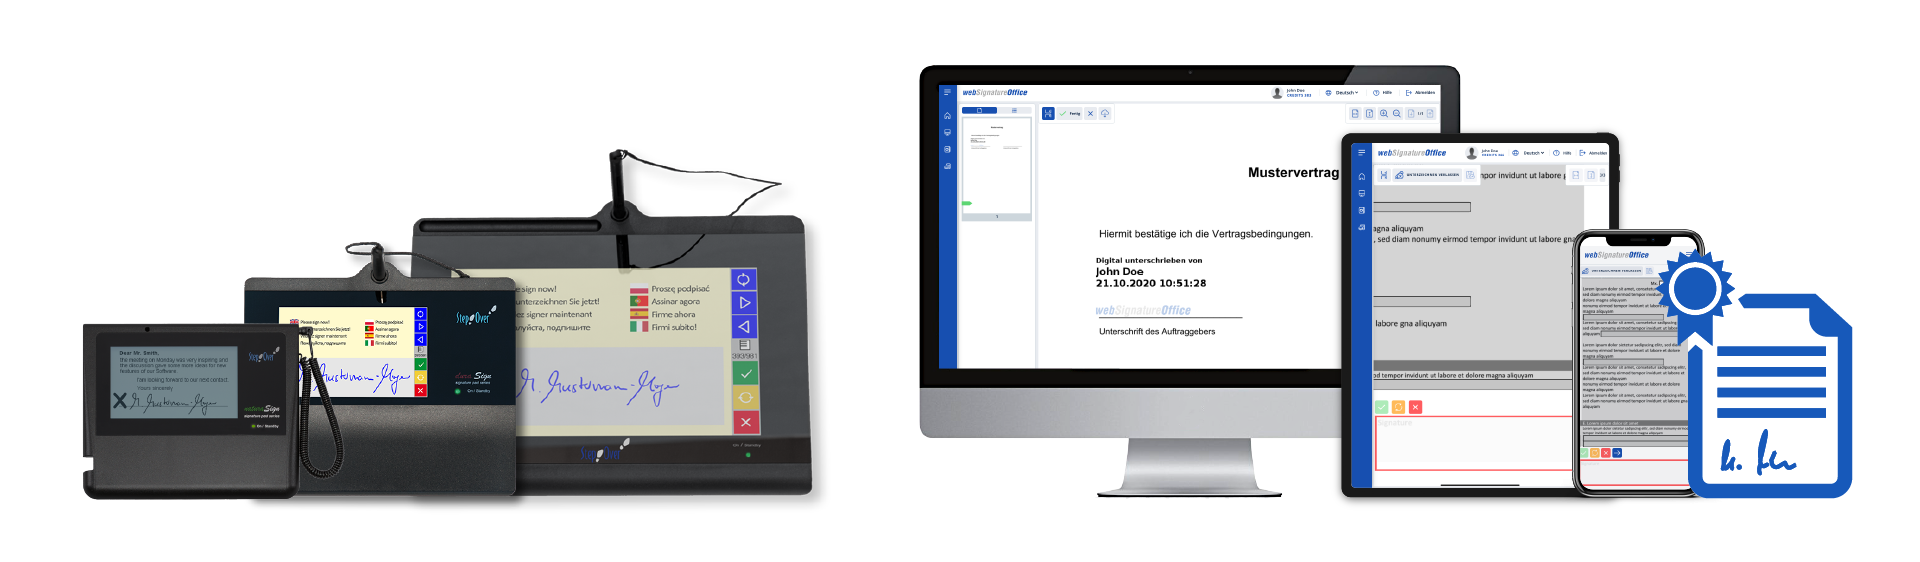 Review eSignatureOffice: Sign PDF documents electronically - appvizer